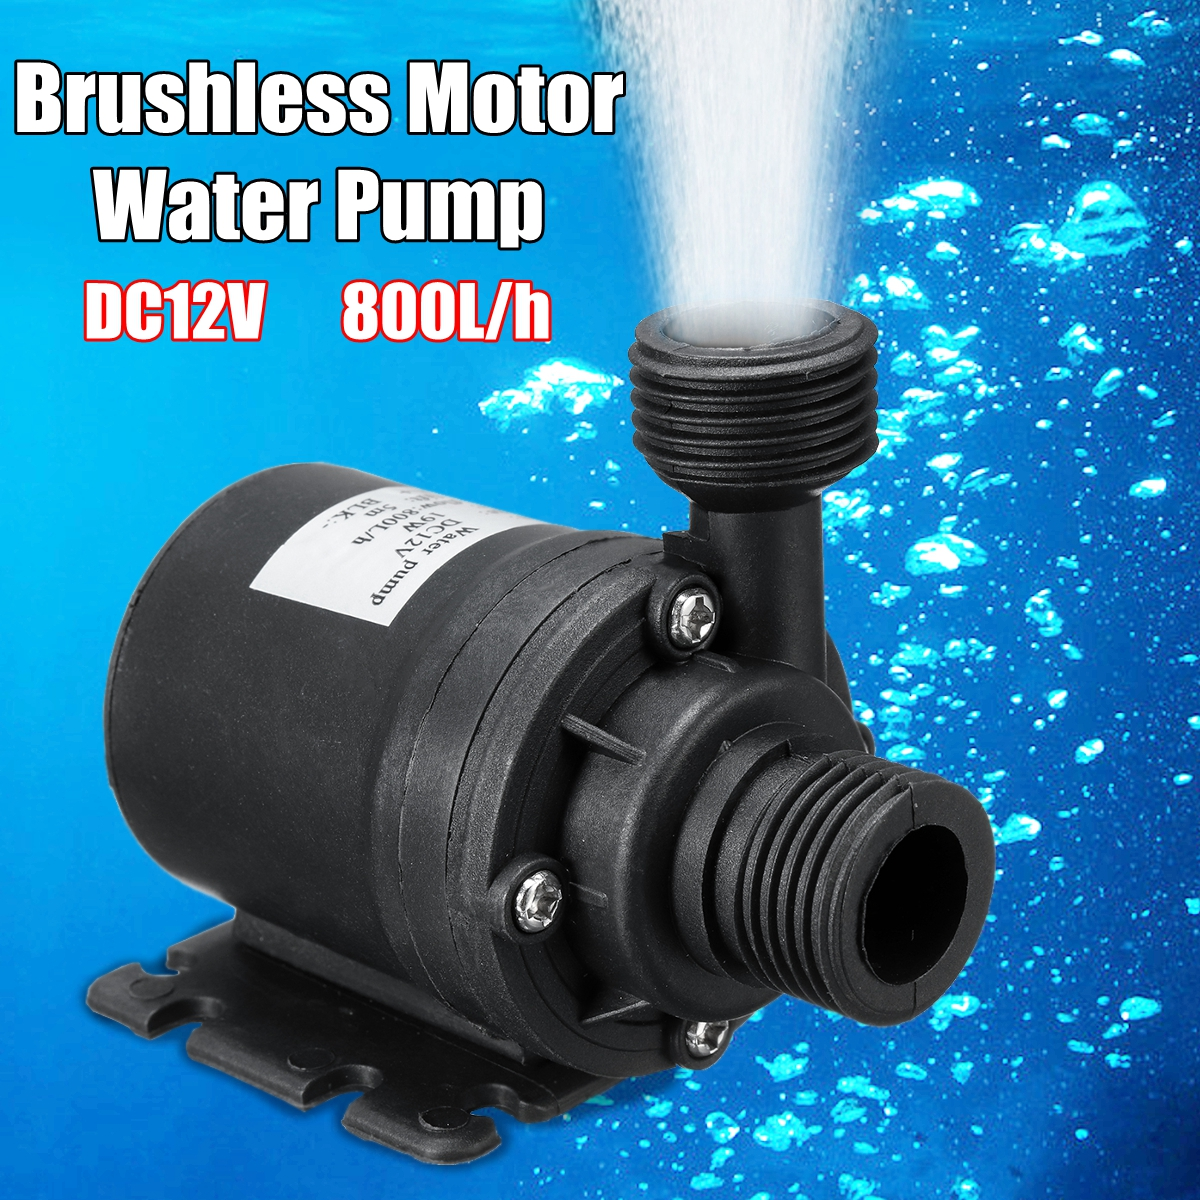 Portable Mini Brushless Motor Ultra-quiet Submersible Water Pump DC 12V 5M 800L/H For Cooling System Fountains Heater